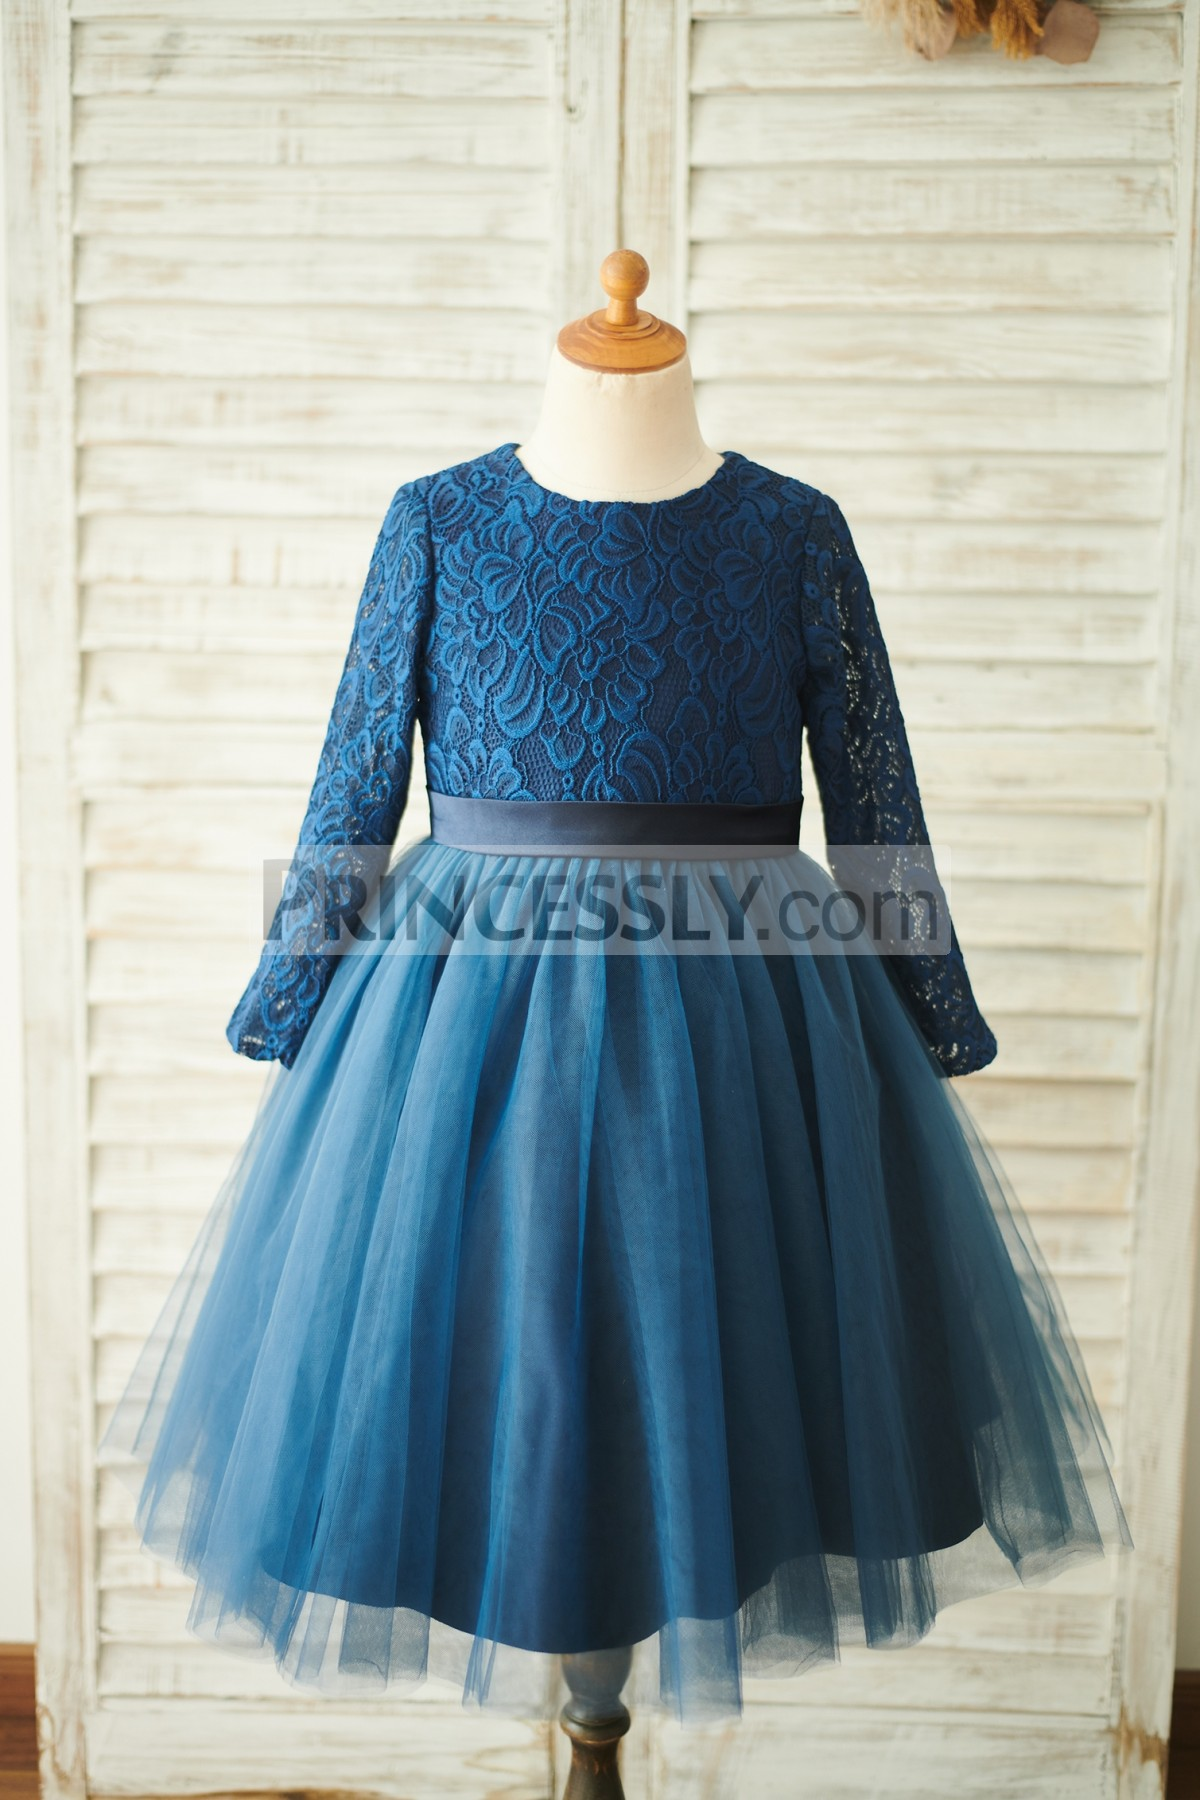 Navy Blue Floral Lace Tulle Flower Girl Dress